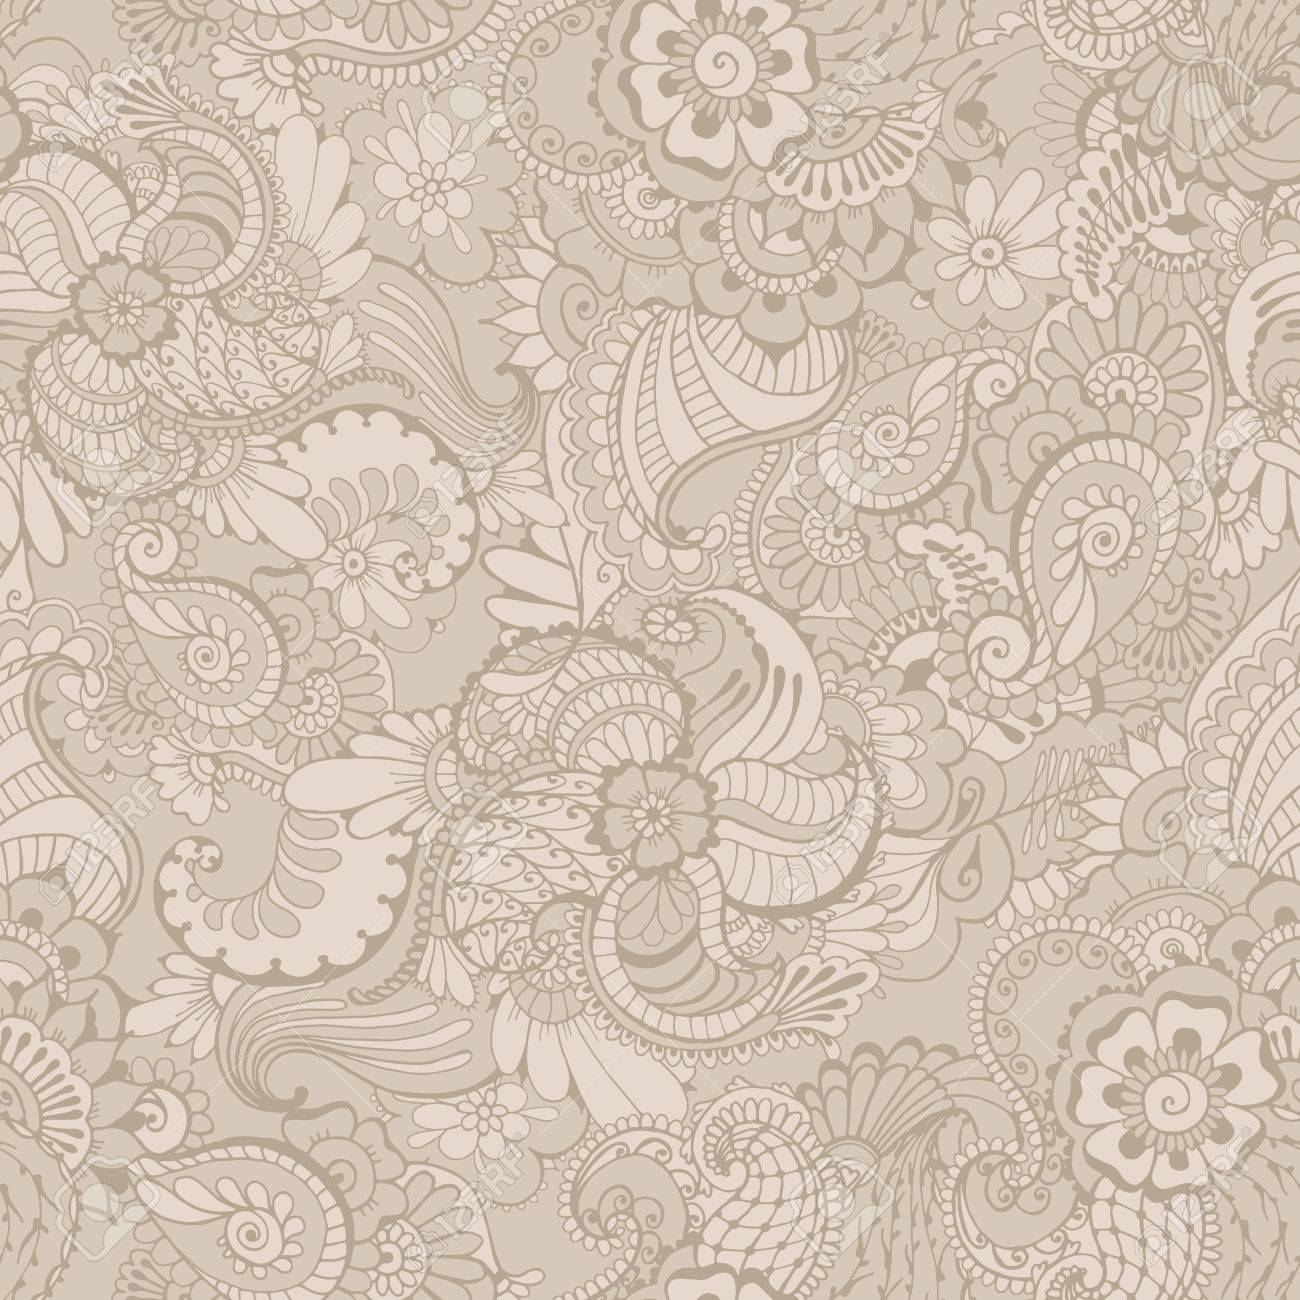 Floral Background With Indian Ornament In Grey Colors Seamless